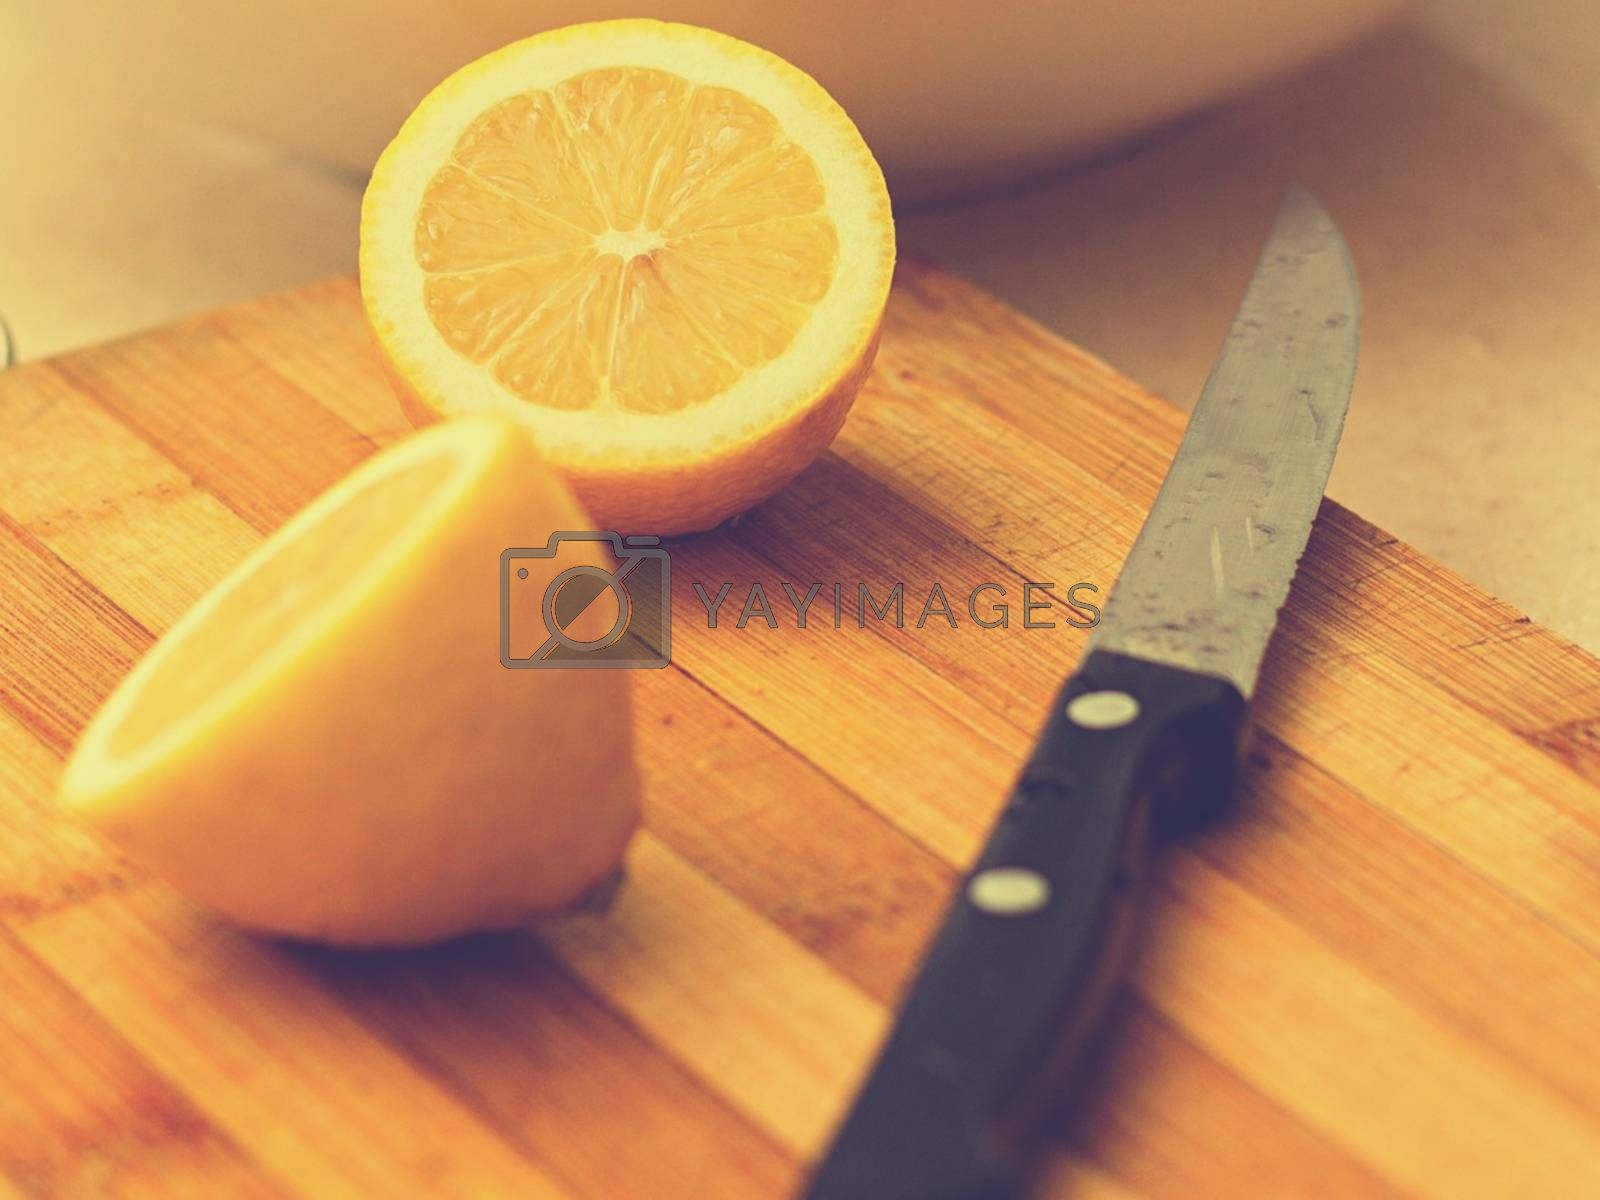 Royalty free image of Two limes sitting on top of a wooden cutting board by balage941